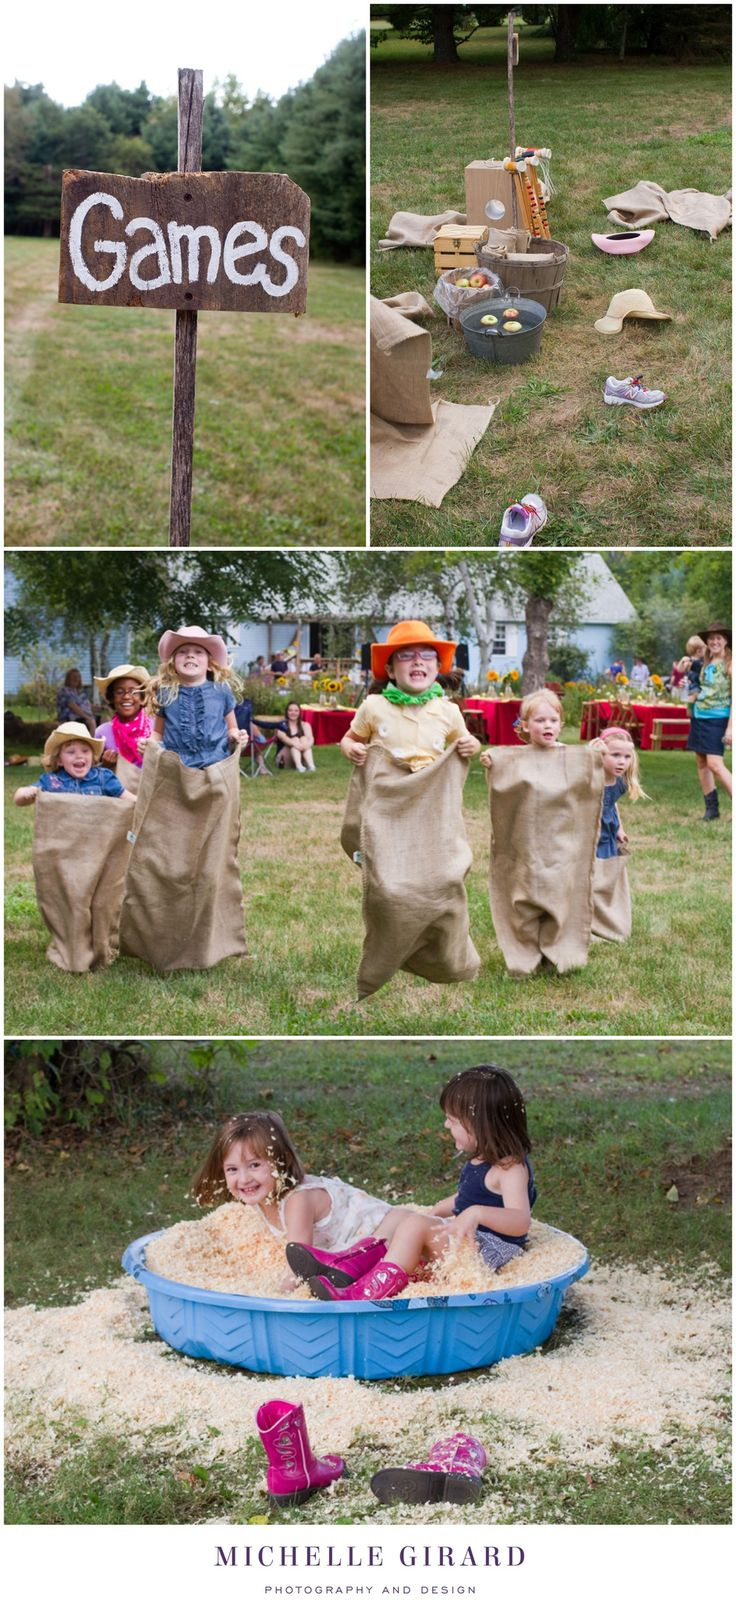 """Children's Country Hoedown Themed Birthday Party :: Wooden sign for the """"Games"""" area with bobbing for apples, races in burlap sacks, croquet, and prizes to be found in a tub of soft wood chips :: Michelle Girard Photography"""